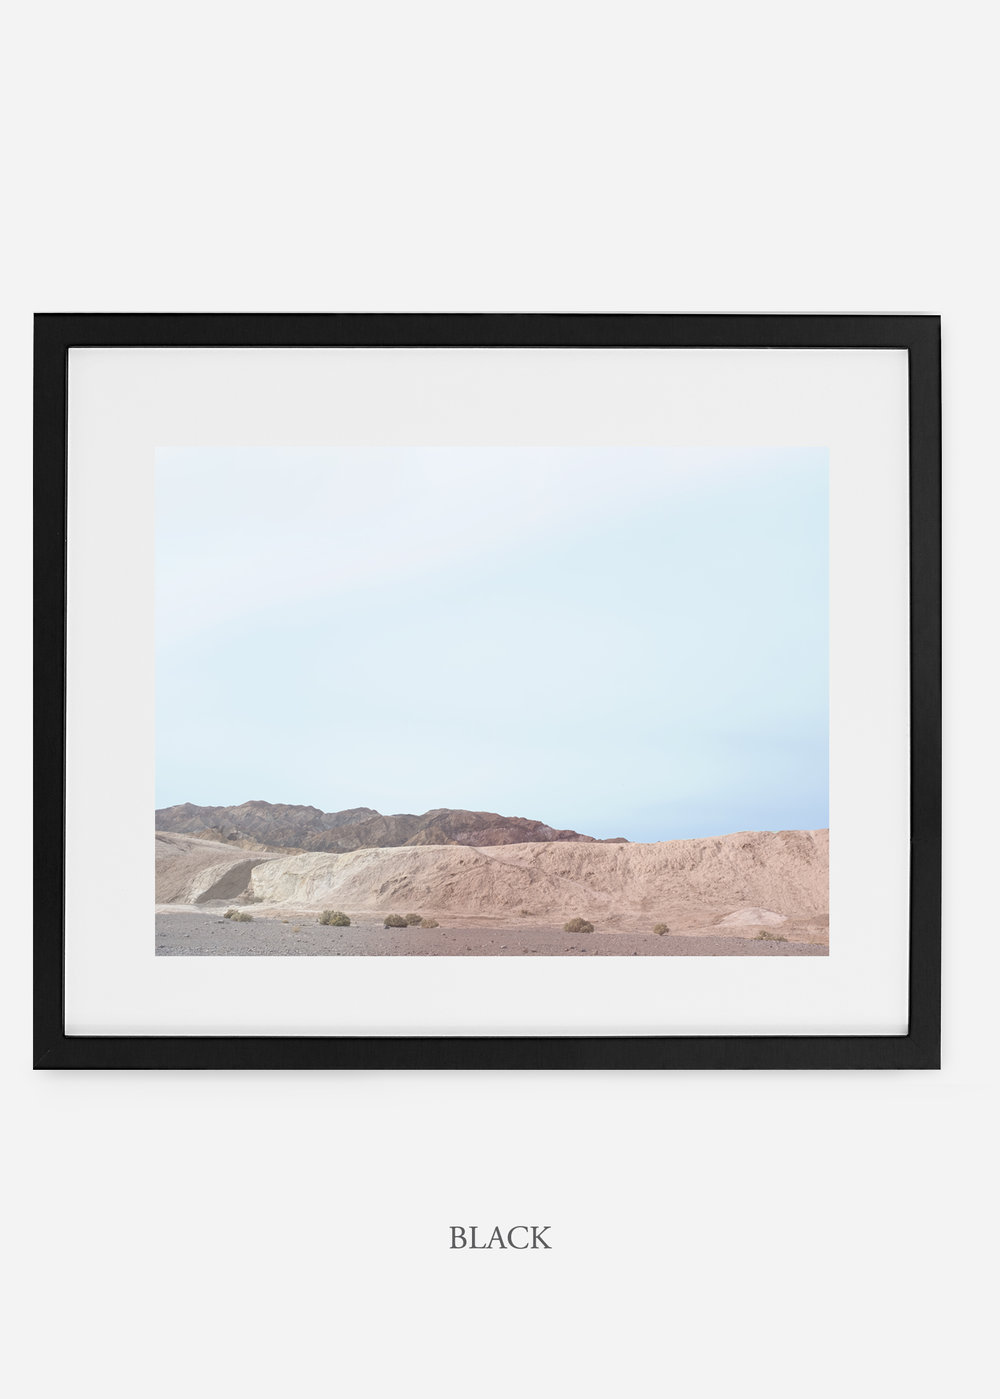 wildercalifornia_blackframe__deathvalley_6_cactus_art_interiordesign_blackandwhite.jpg